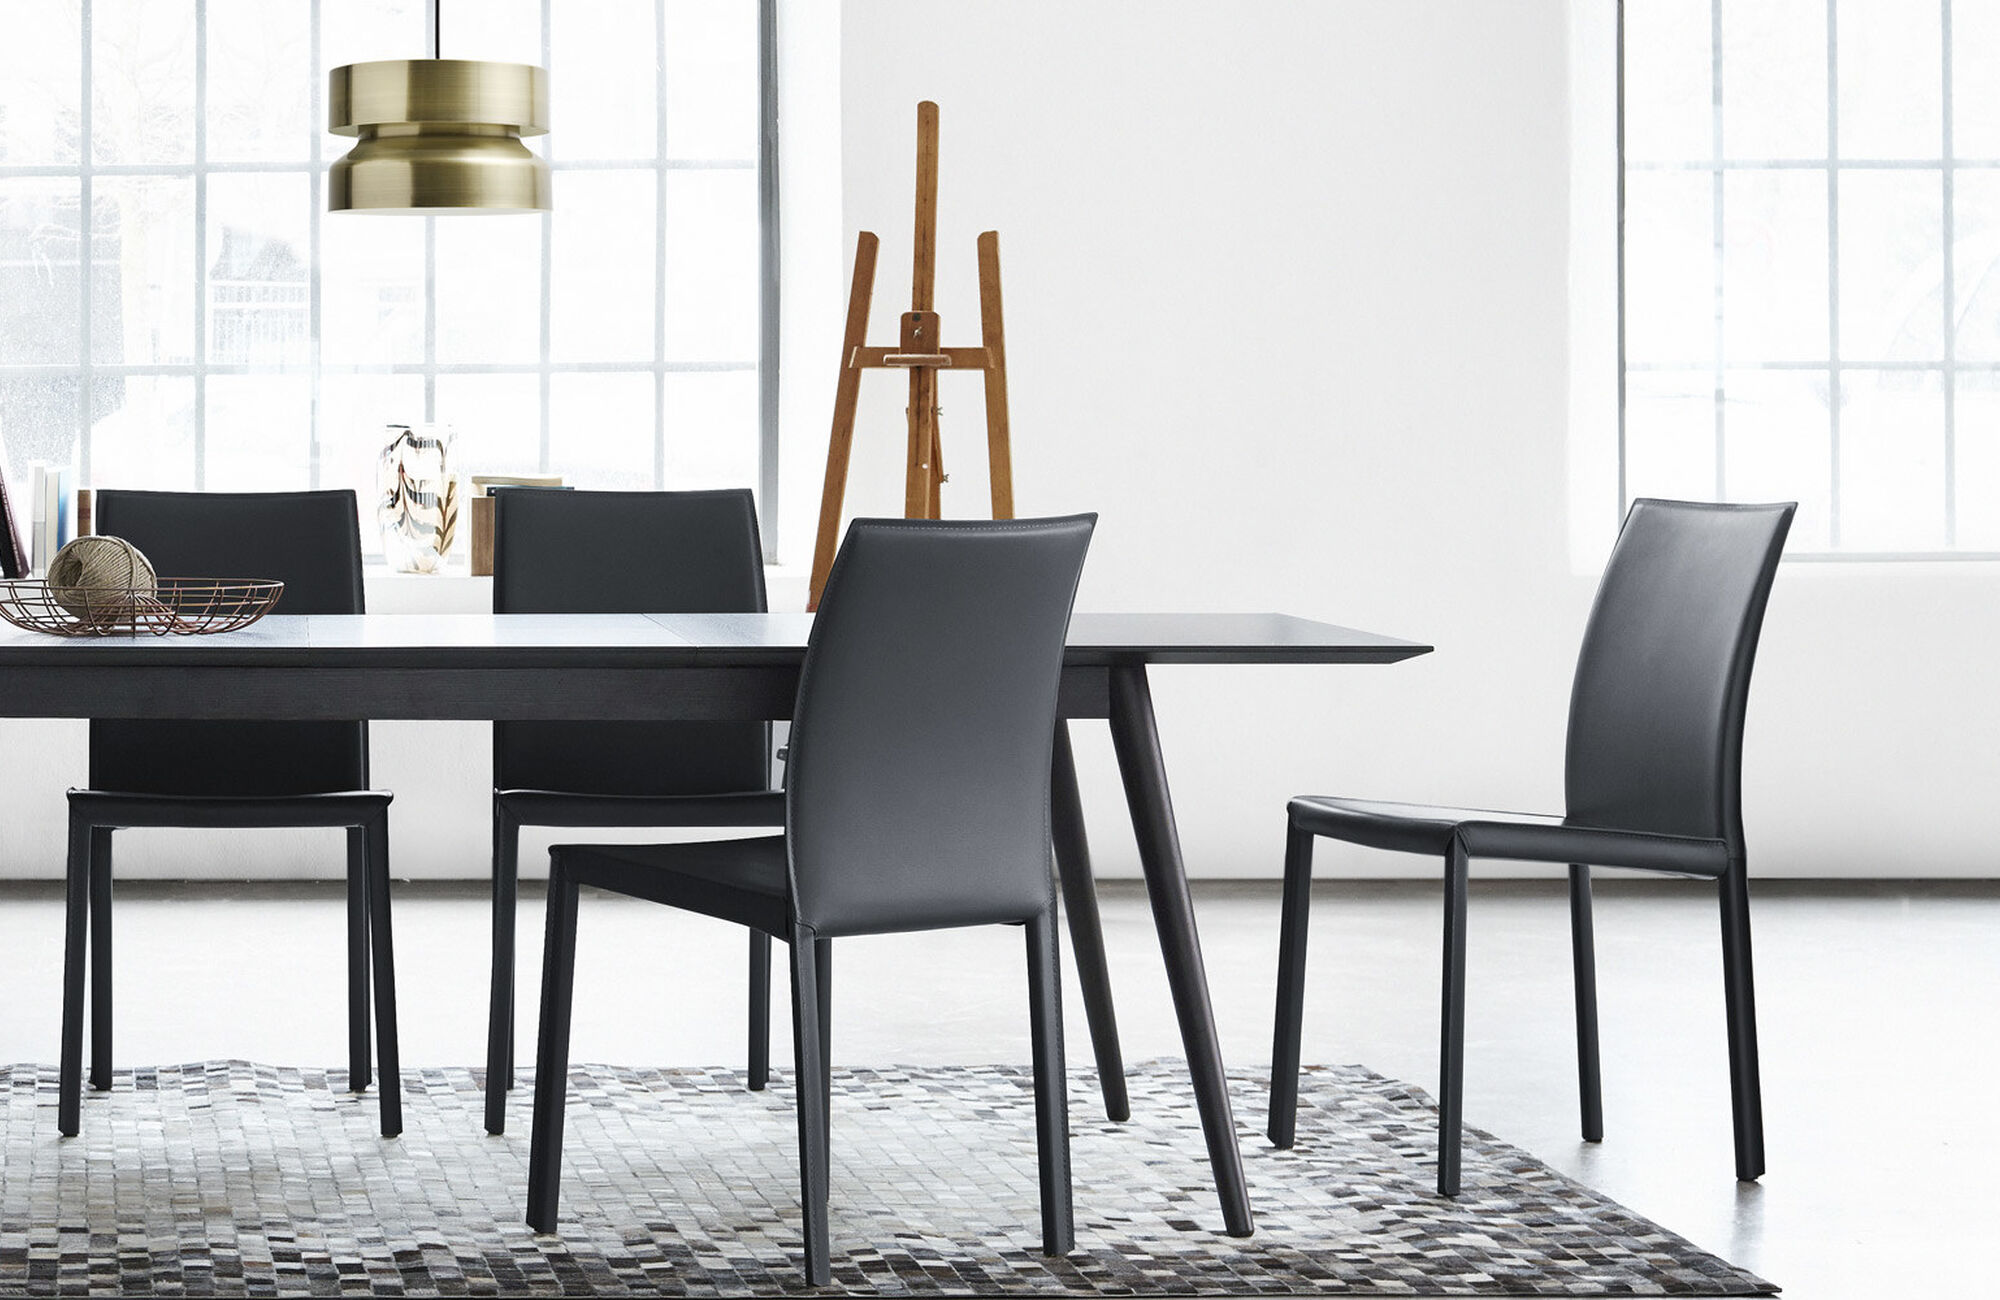 Dining chairs - Zarra chair